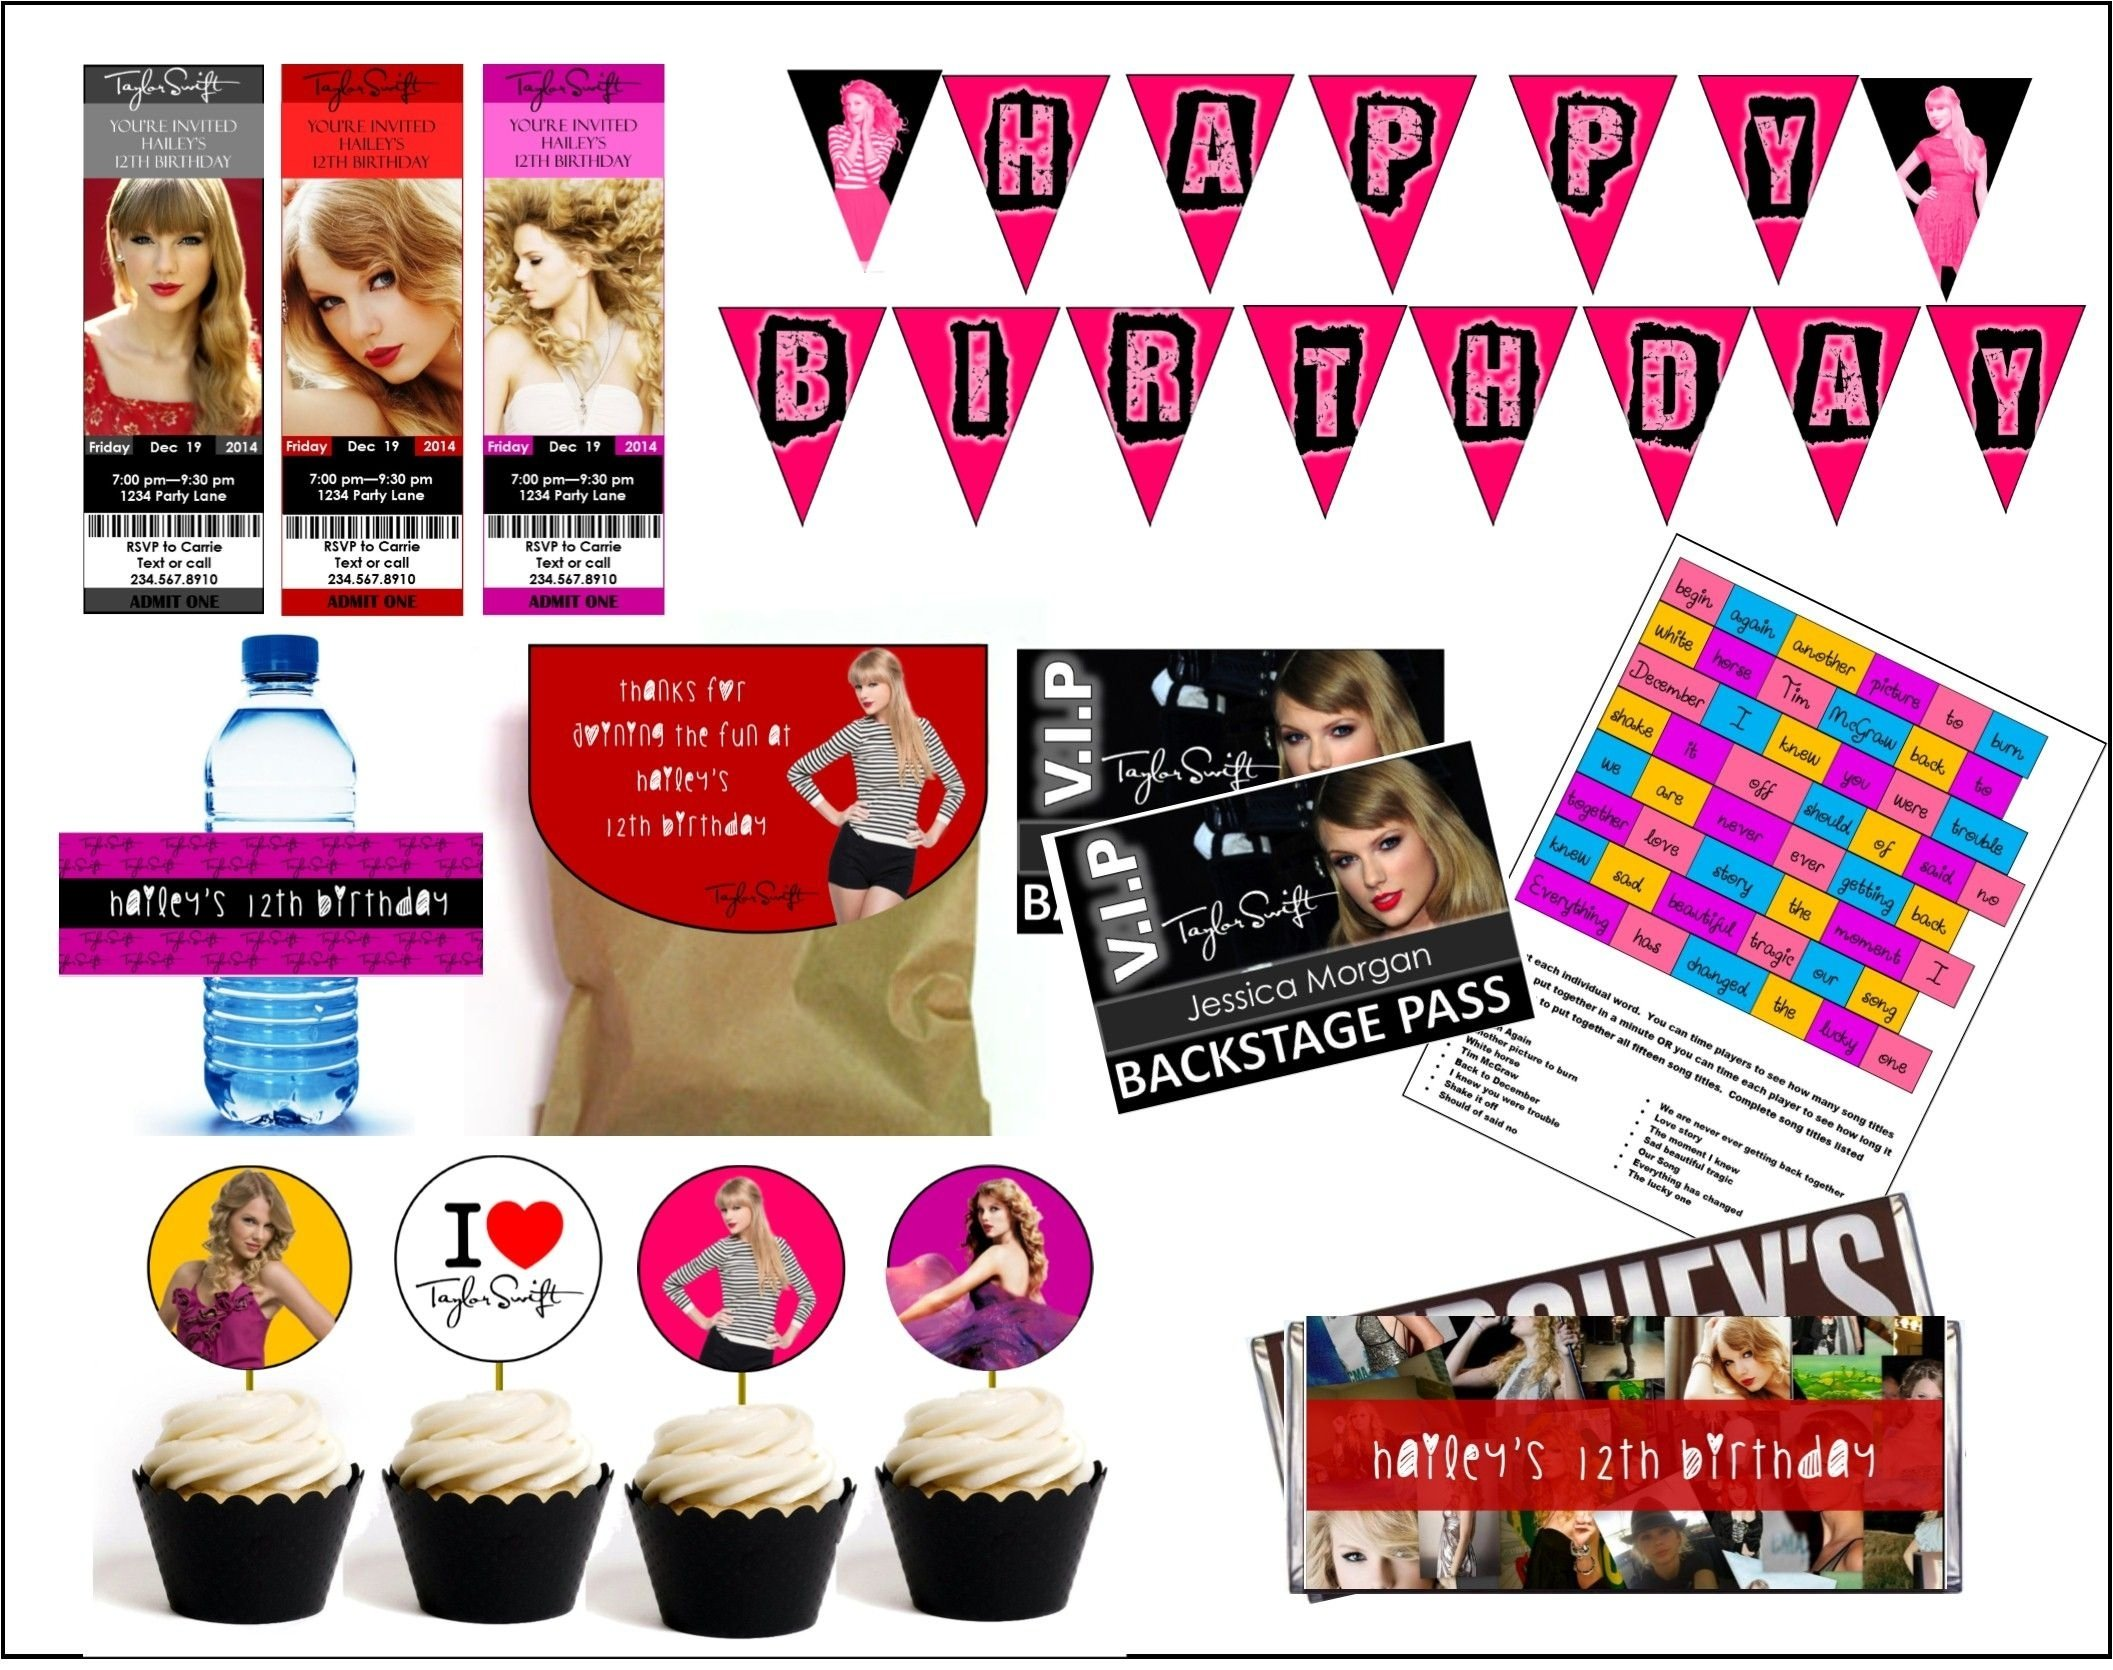 10 Most Popular Taylor Swift Birthday Party Ideas this downloadable party kit comes with everything you need to create 2020